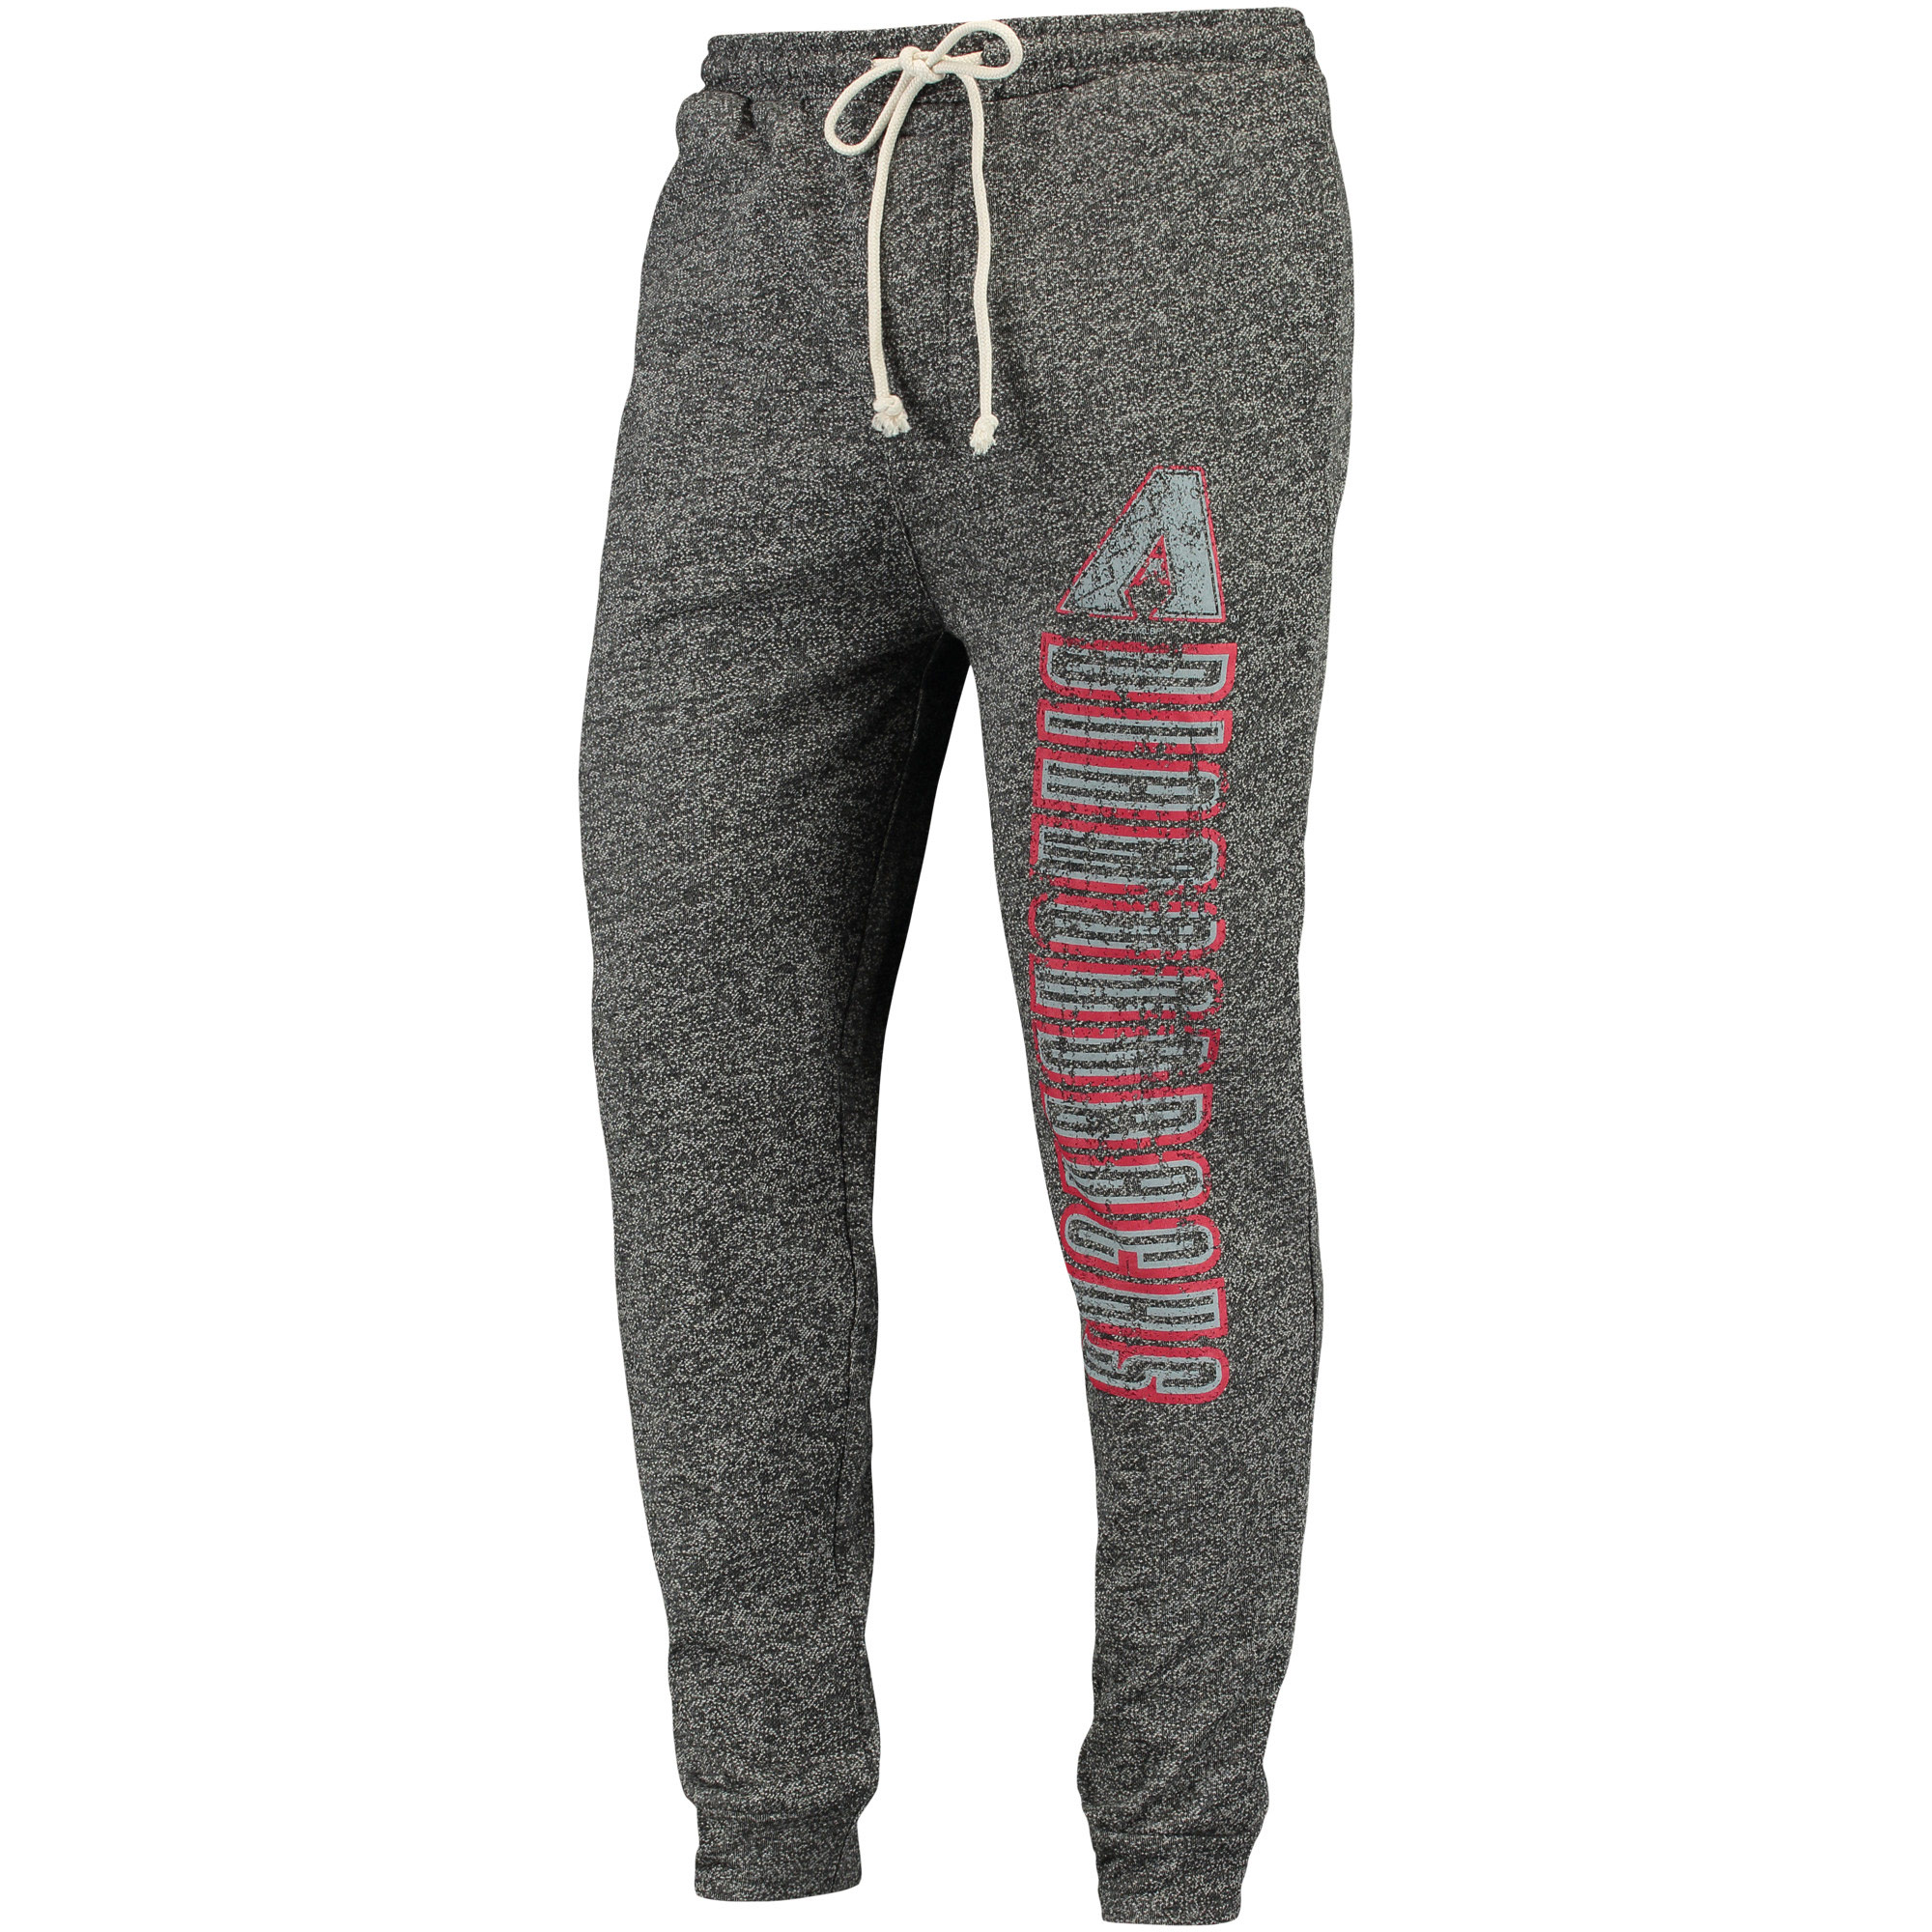 Arizona Diamondbacks Concepts Sport Pinpoint French Terry Cuffed Pant - Charcoal